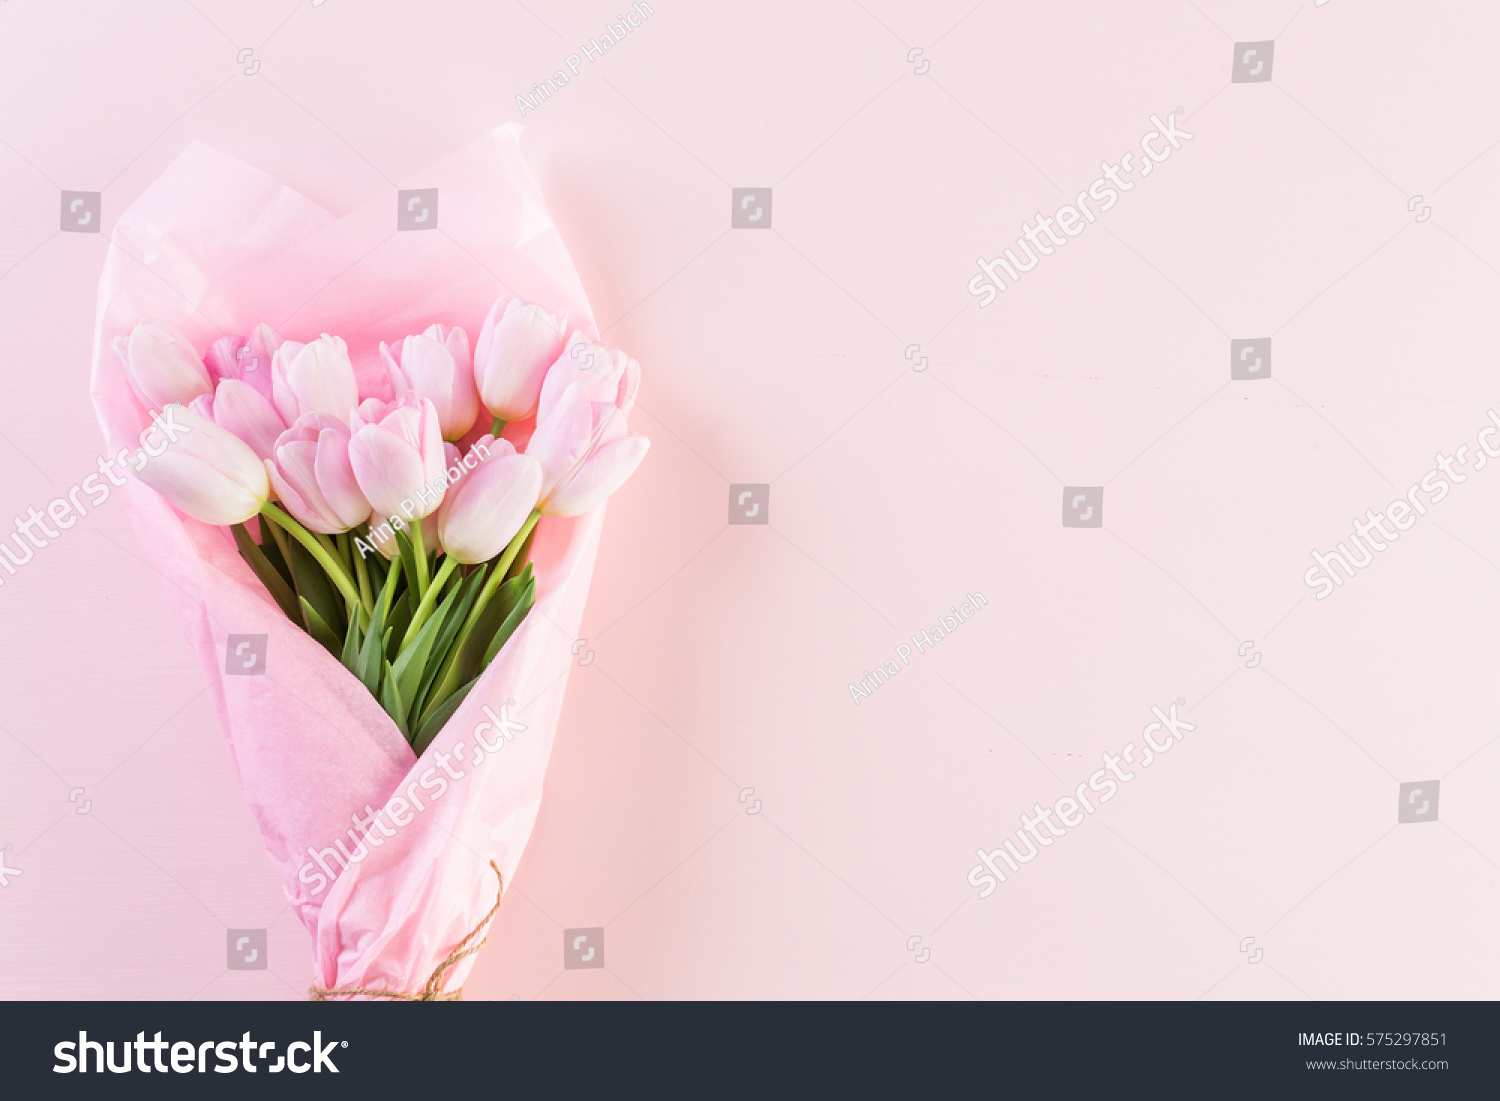 Bouquet of pink tulips wrappen in pink paper.